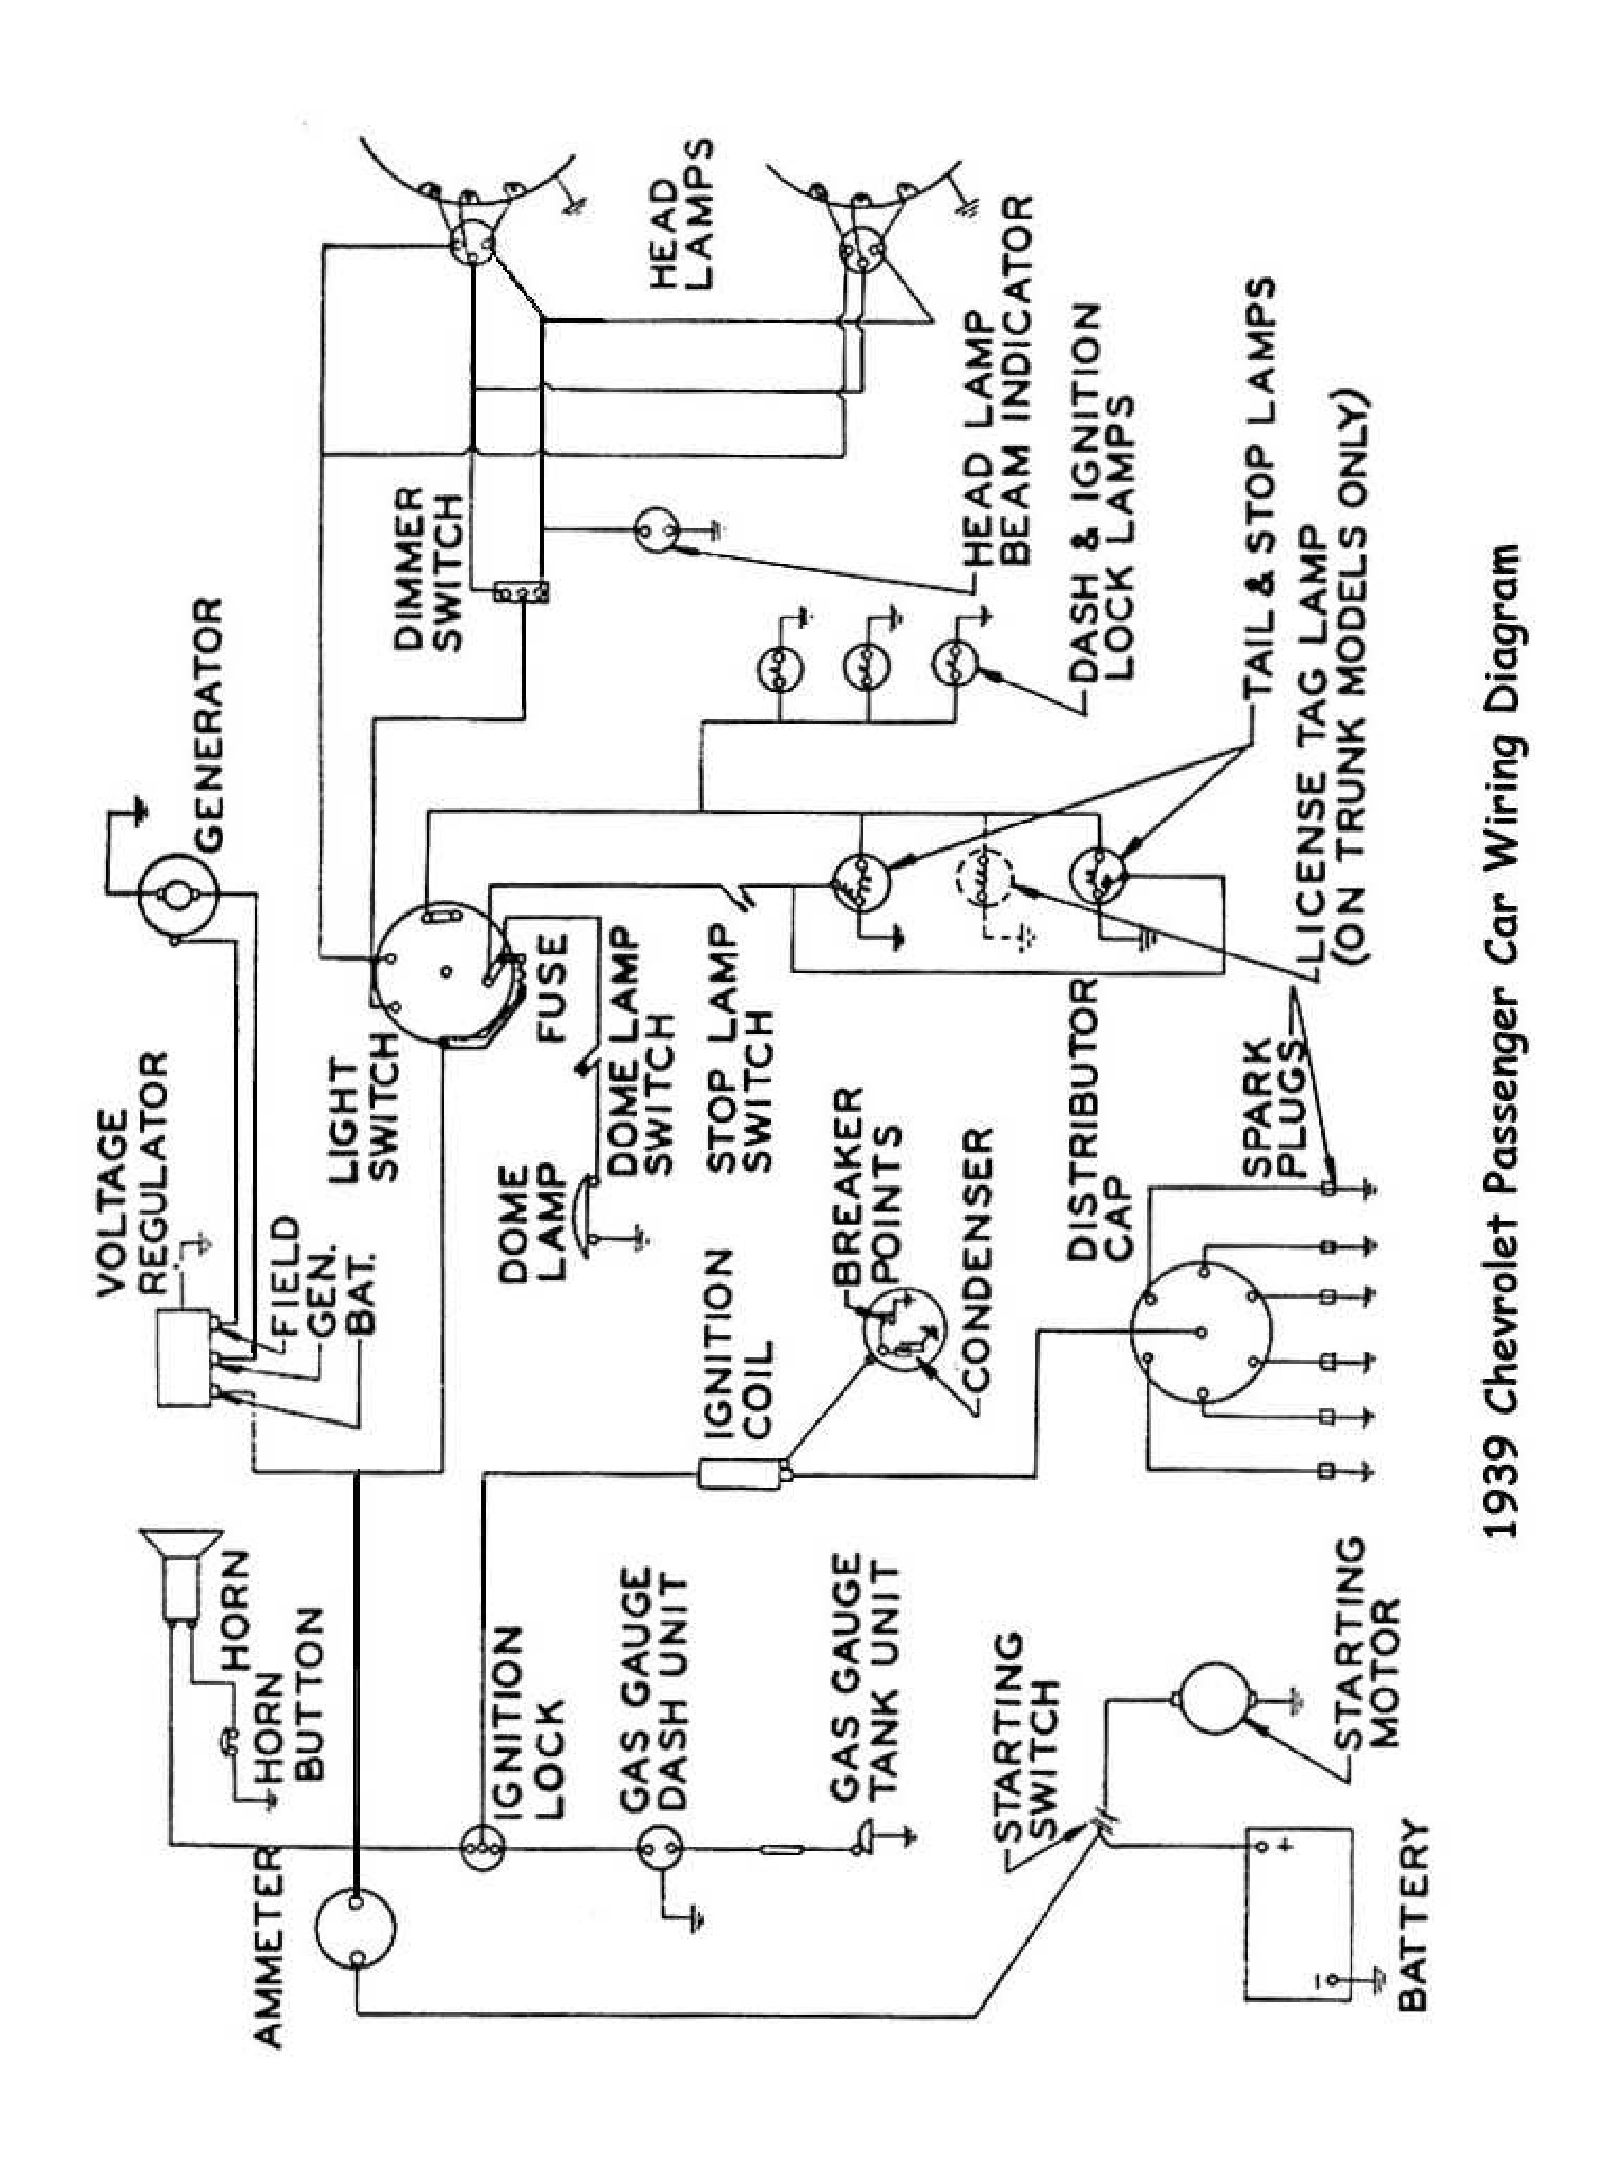 wiring diagram for ac cobra kit car wiring diagram Fuses for 2003 Chevy Silverado ac cobra kit car wiring diagram wiring diagram specialties1957 ford wiring schematic wiring diagram database ac